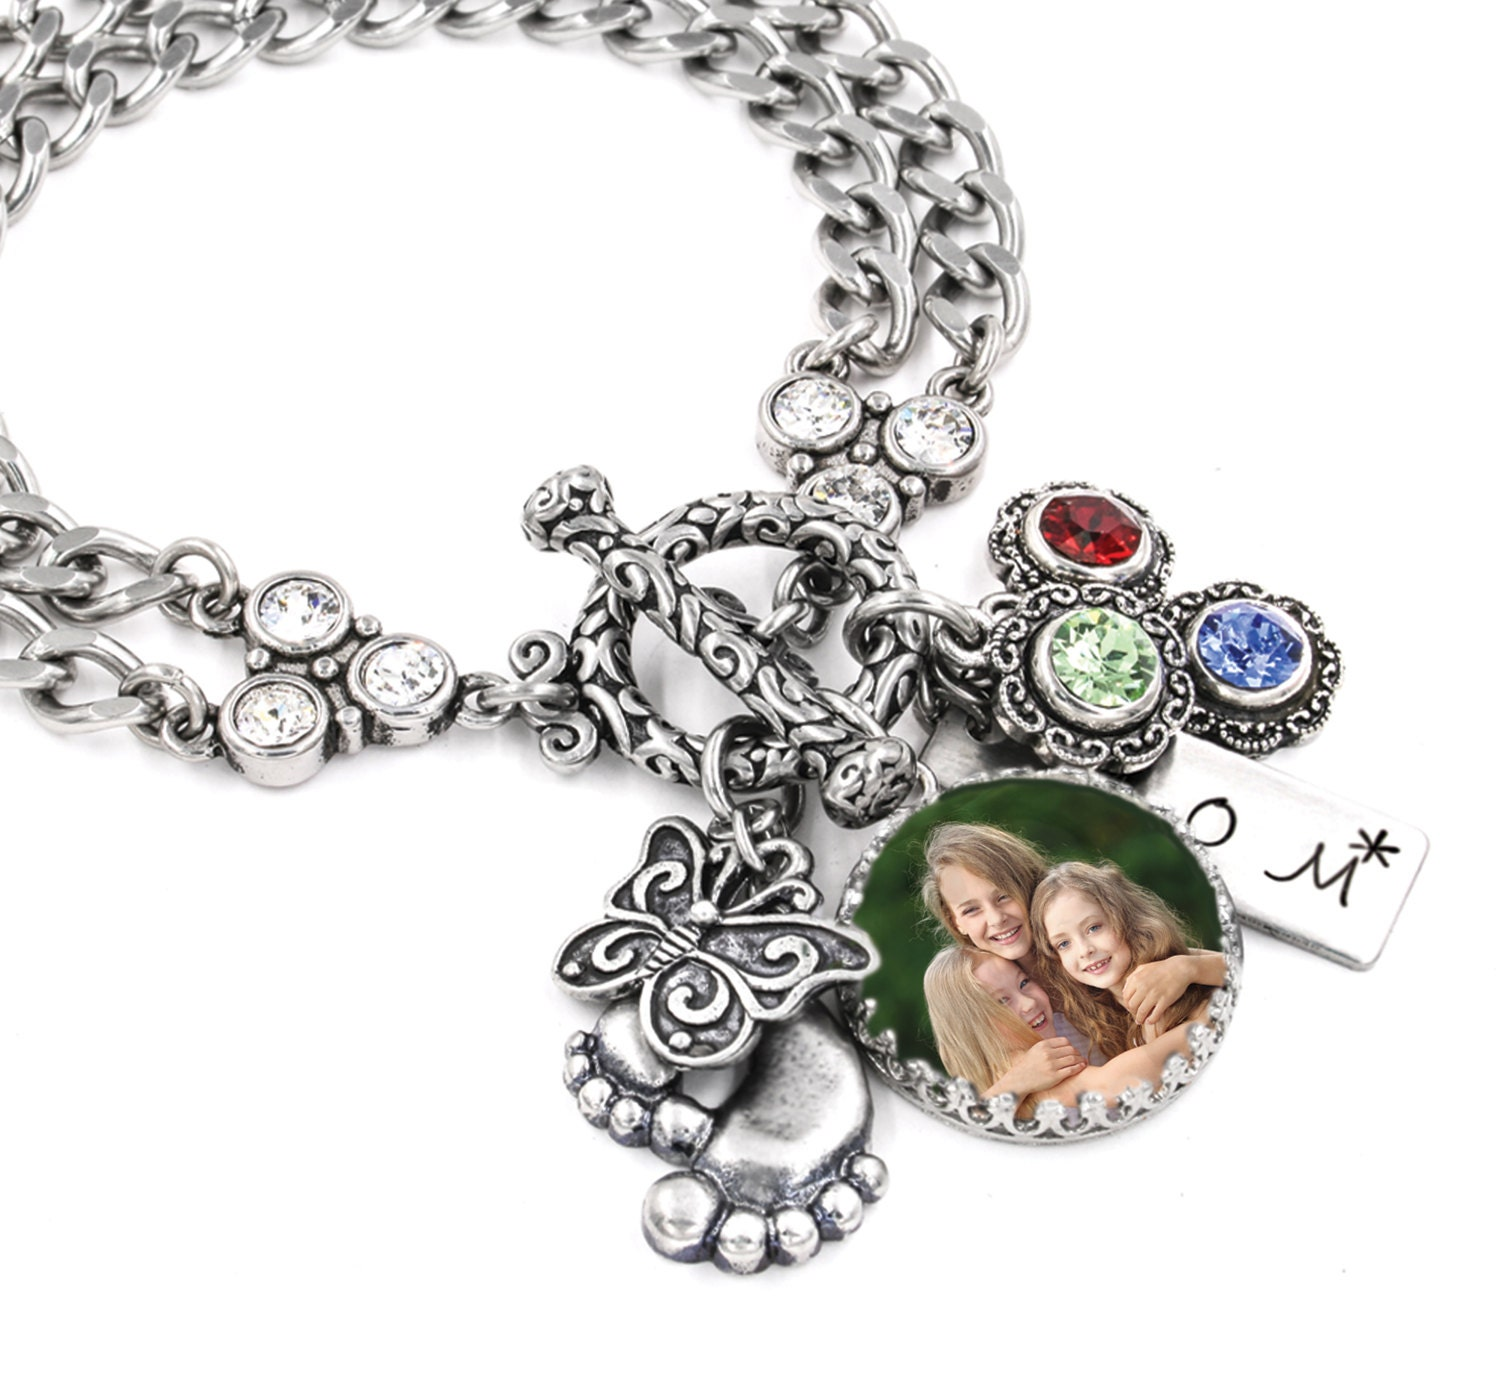 Mothers Charm Bracelet: Personalized Mothers Day Jewelry Mother's Day Gift